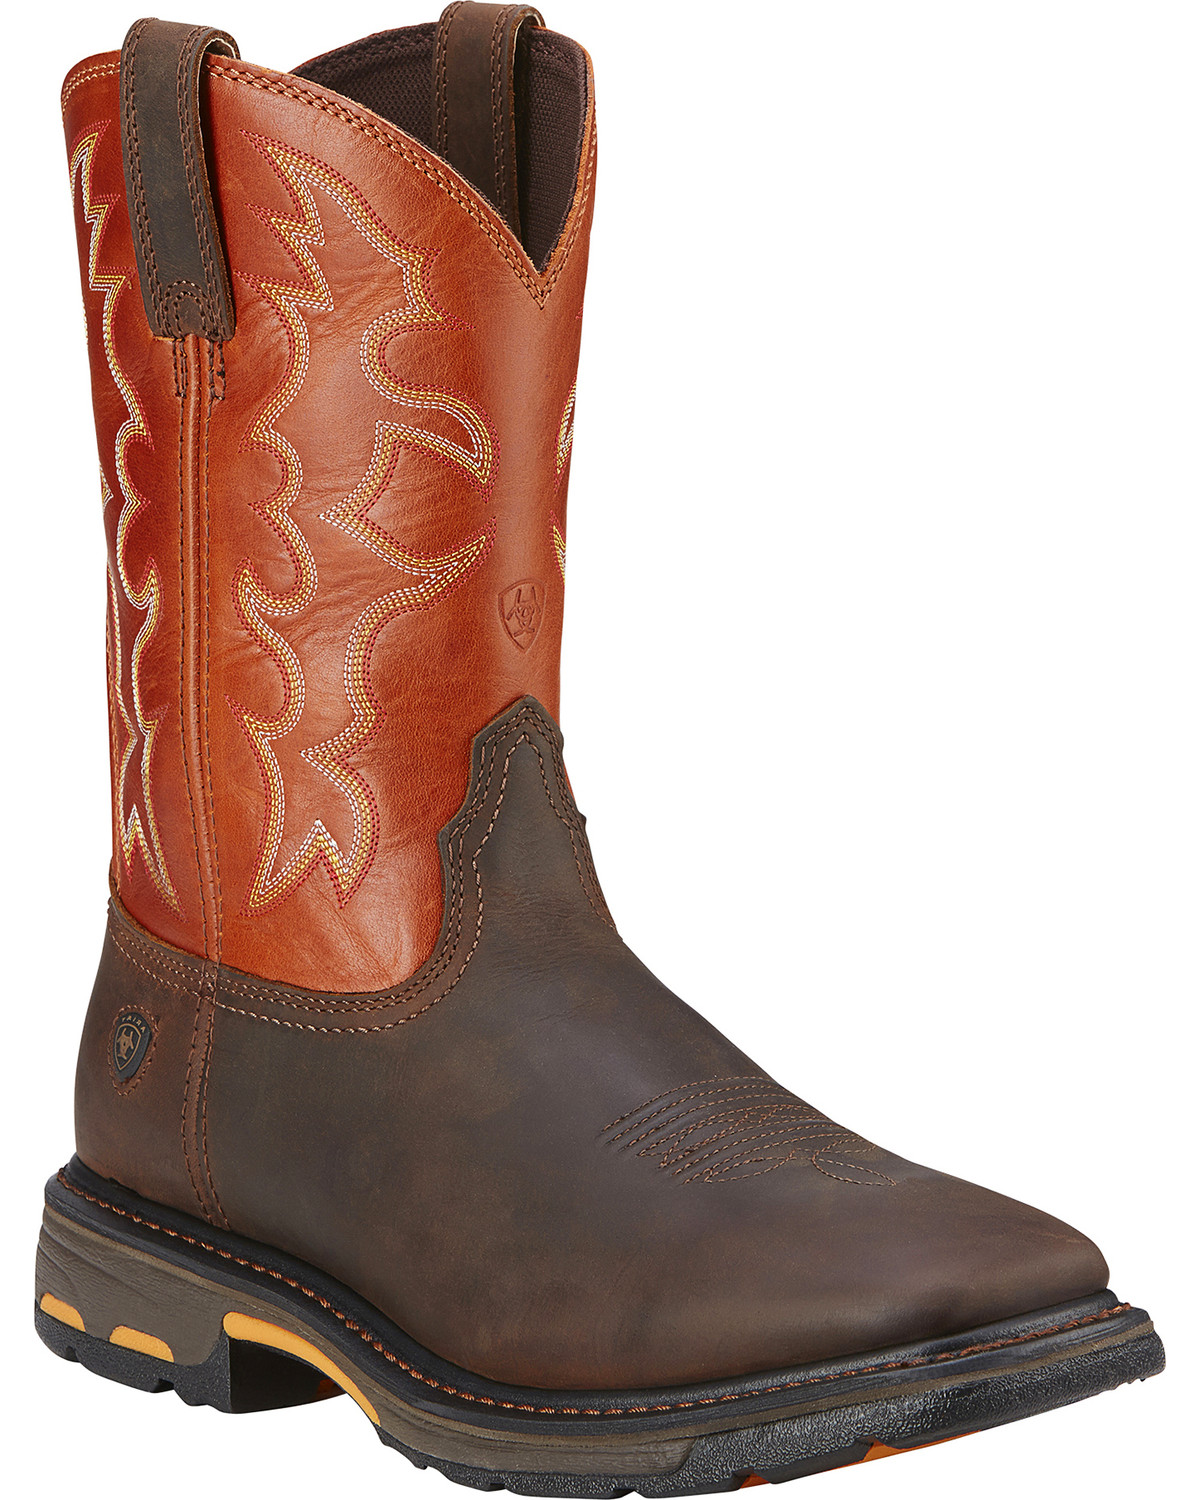 Workhog Square Toe Work Boots | Boot Barn